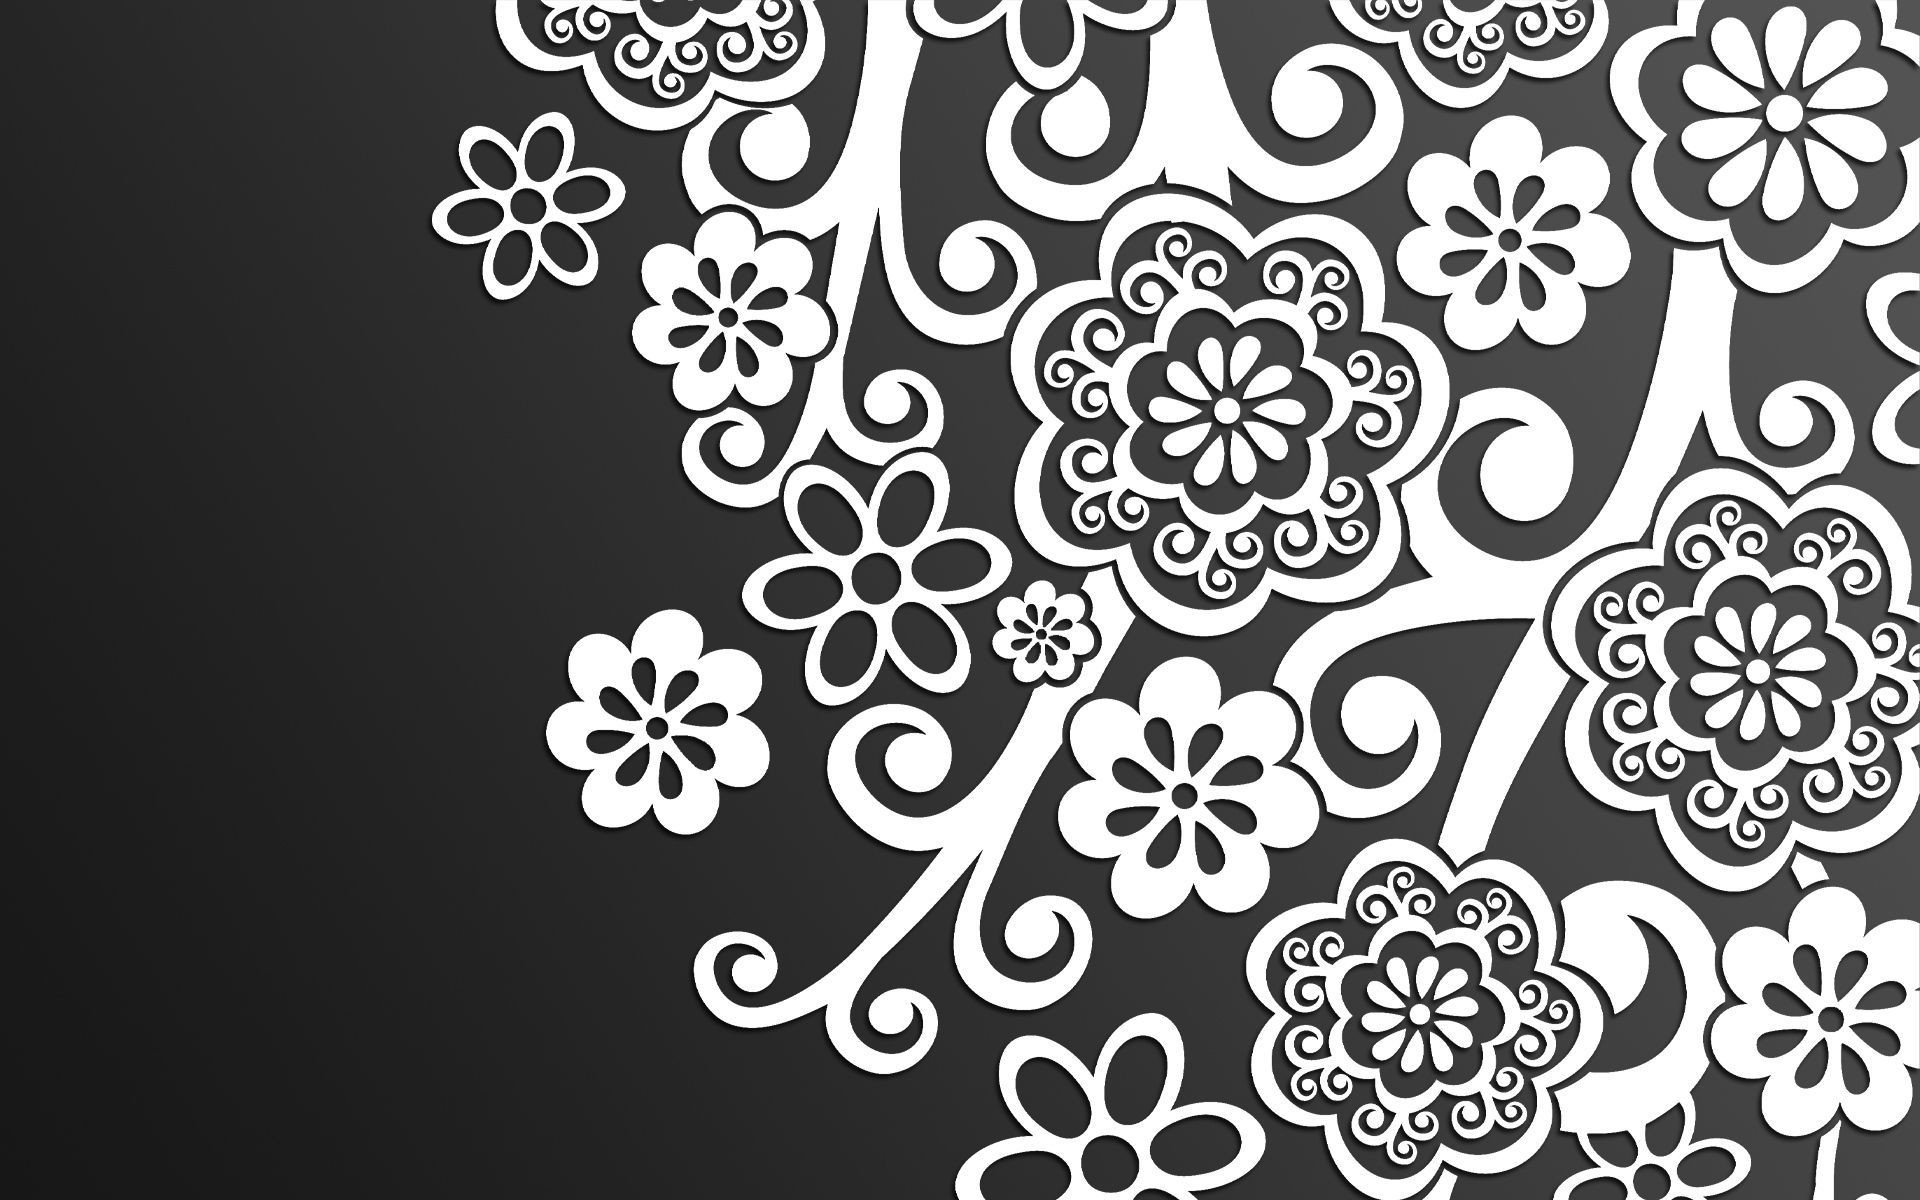 floral pattern hd wallpaper batik vector background hd 1594704 hd wallpaper backgrounds download floral pattern hd wallpaper batik